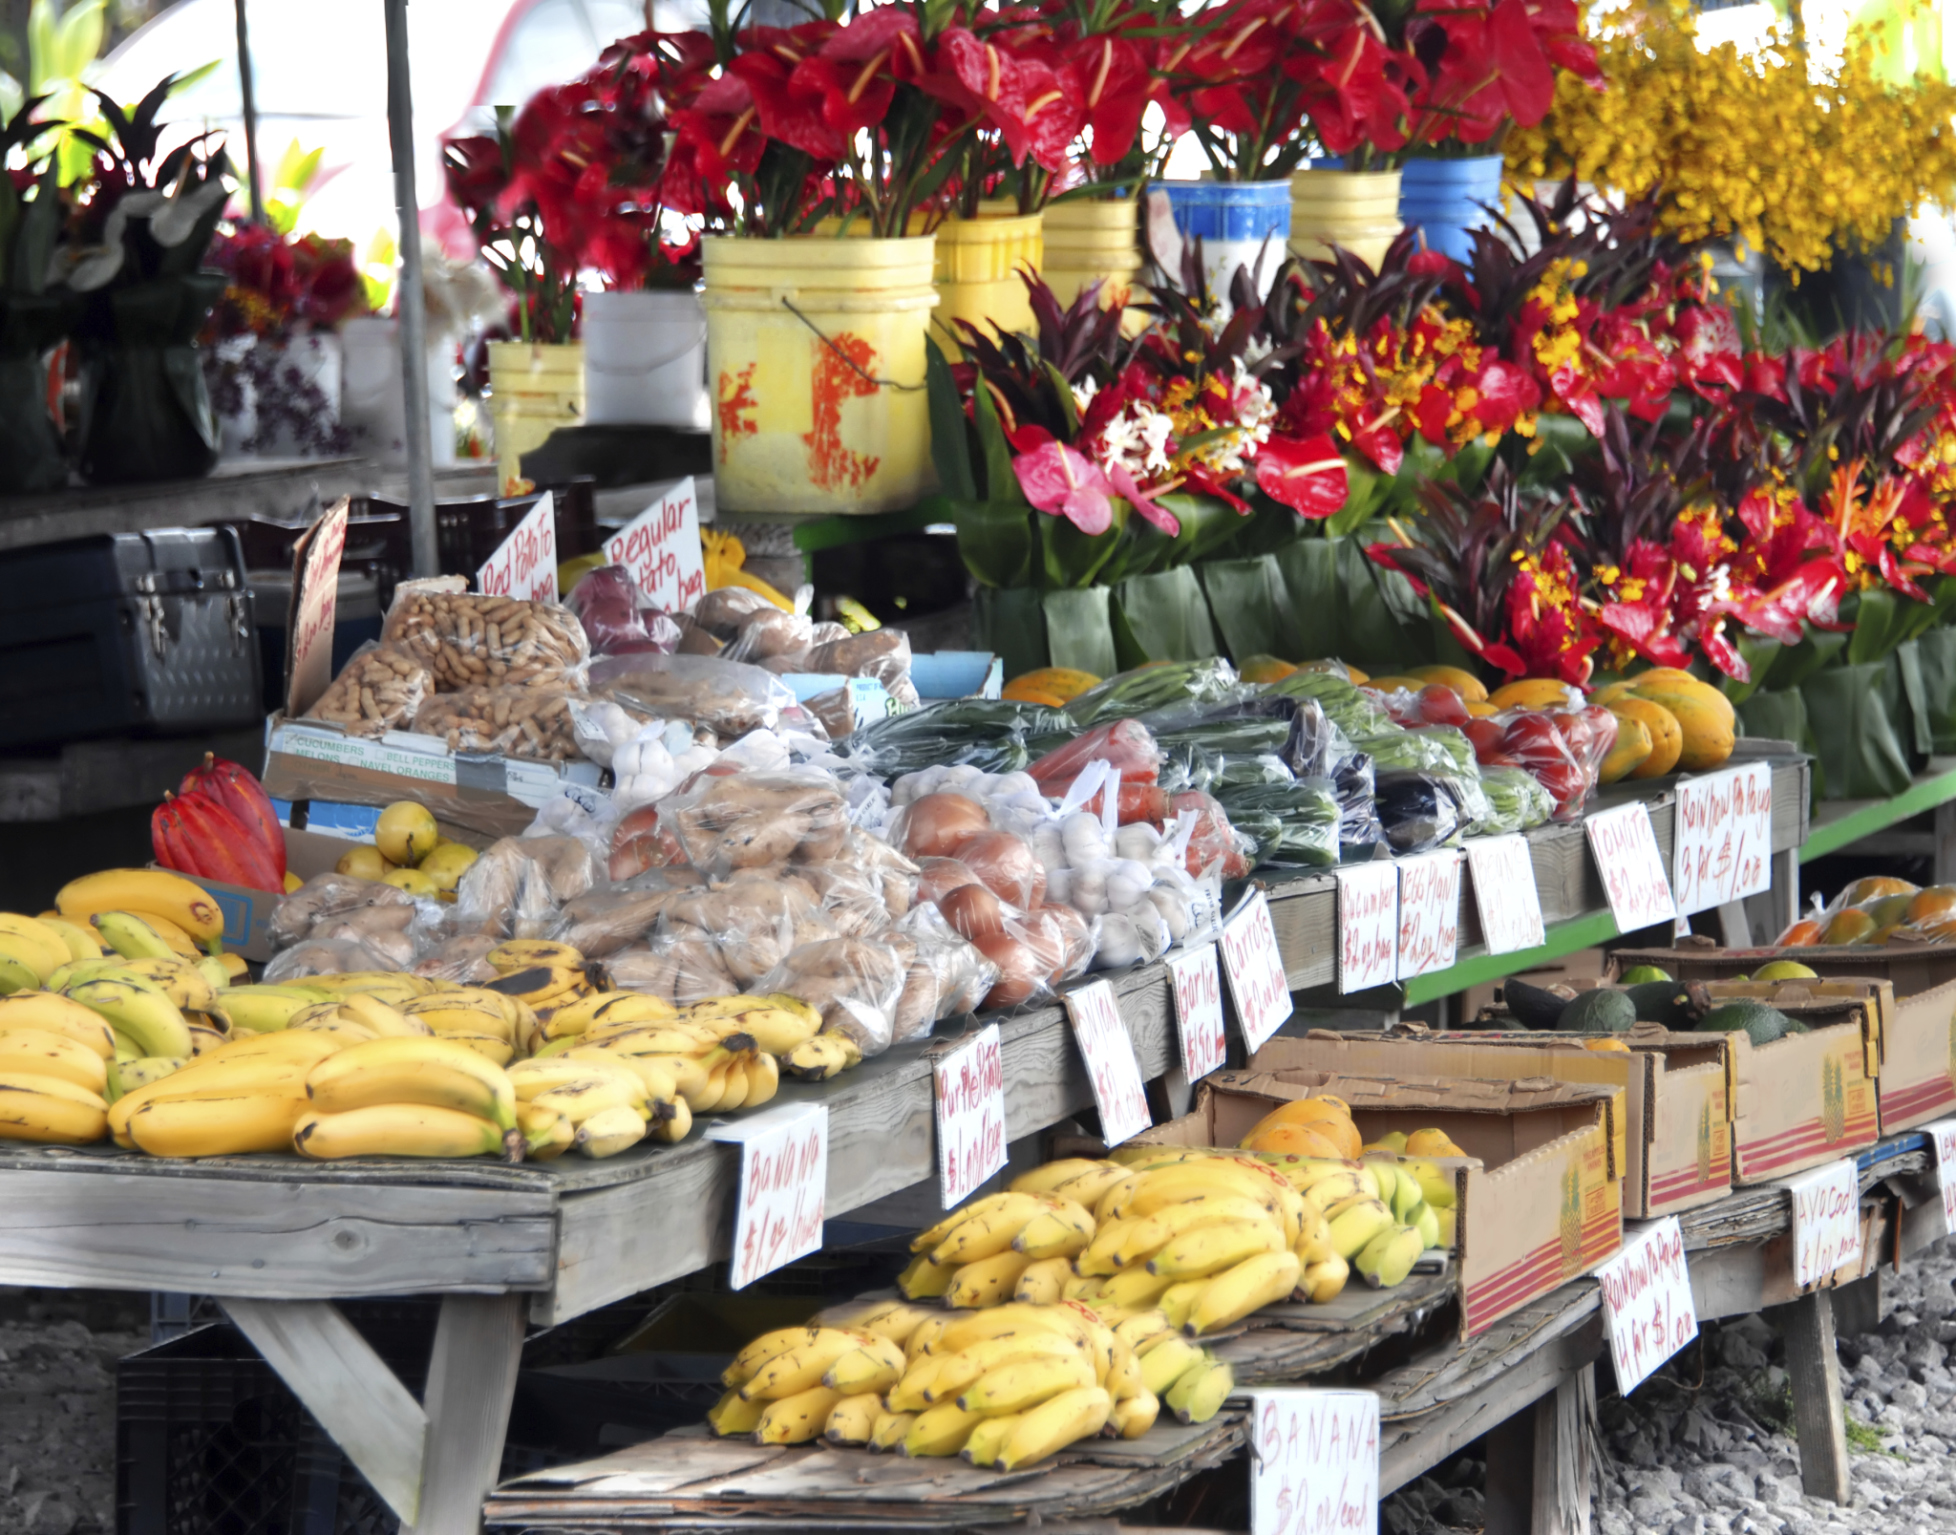 How to Start a Fruit & Vegetable Business | Bizfluent